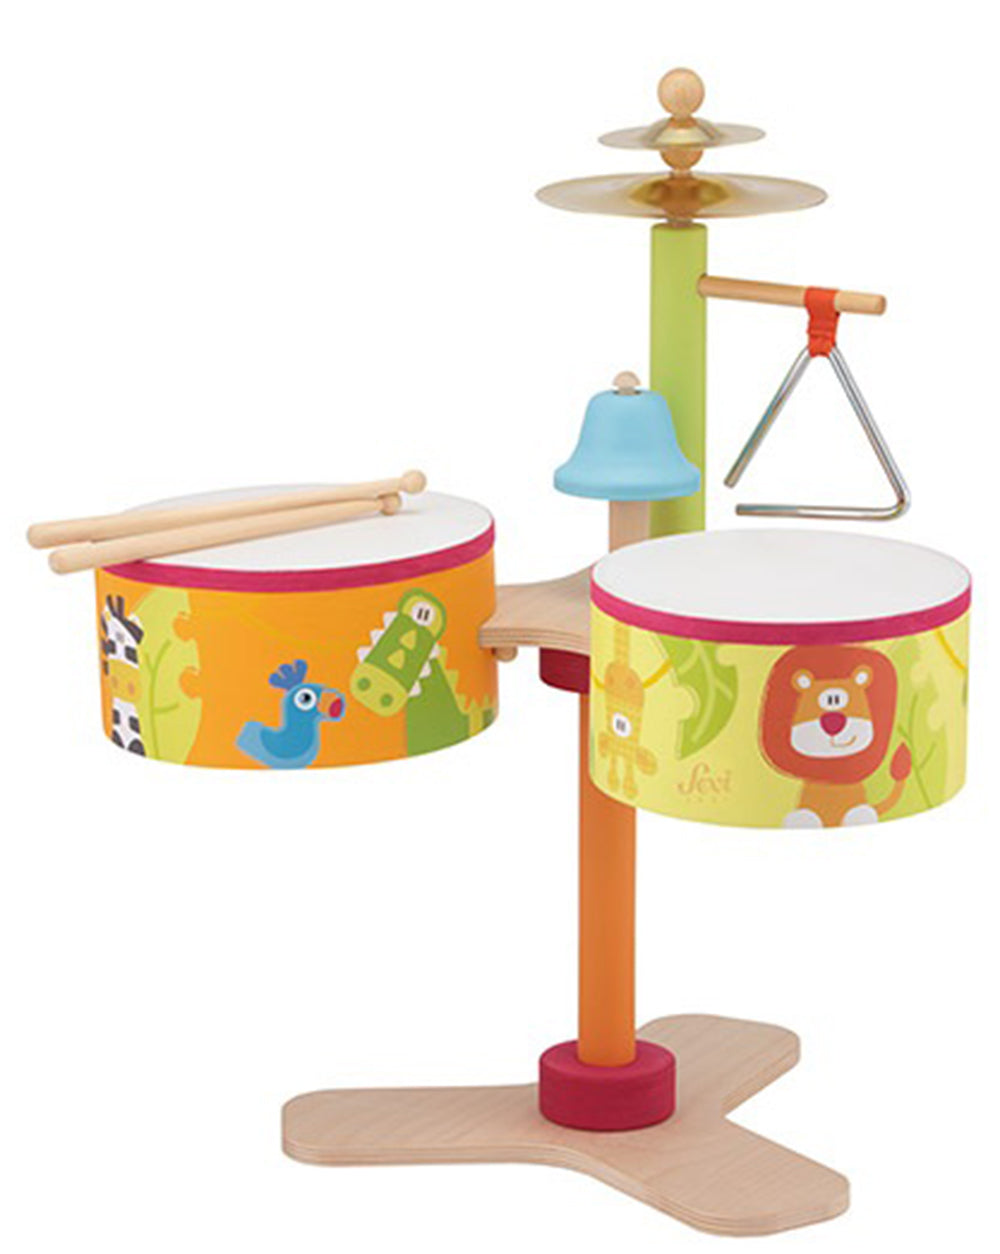 Sevi Wooden Savannah Drum Set